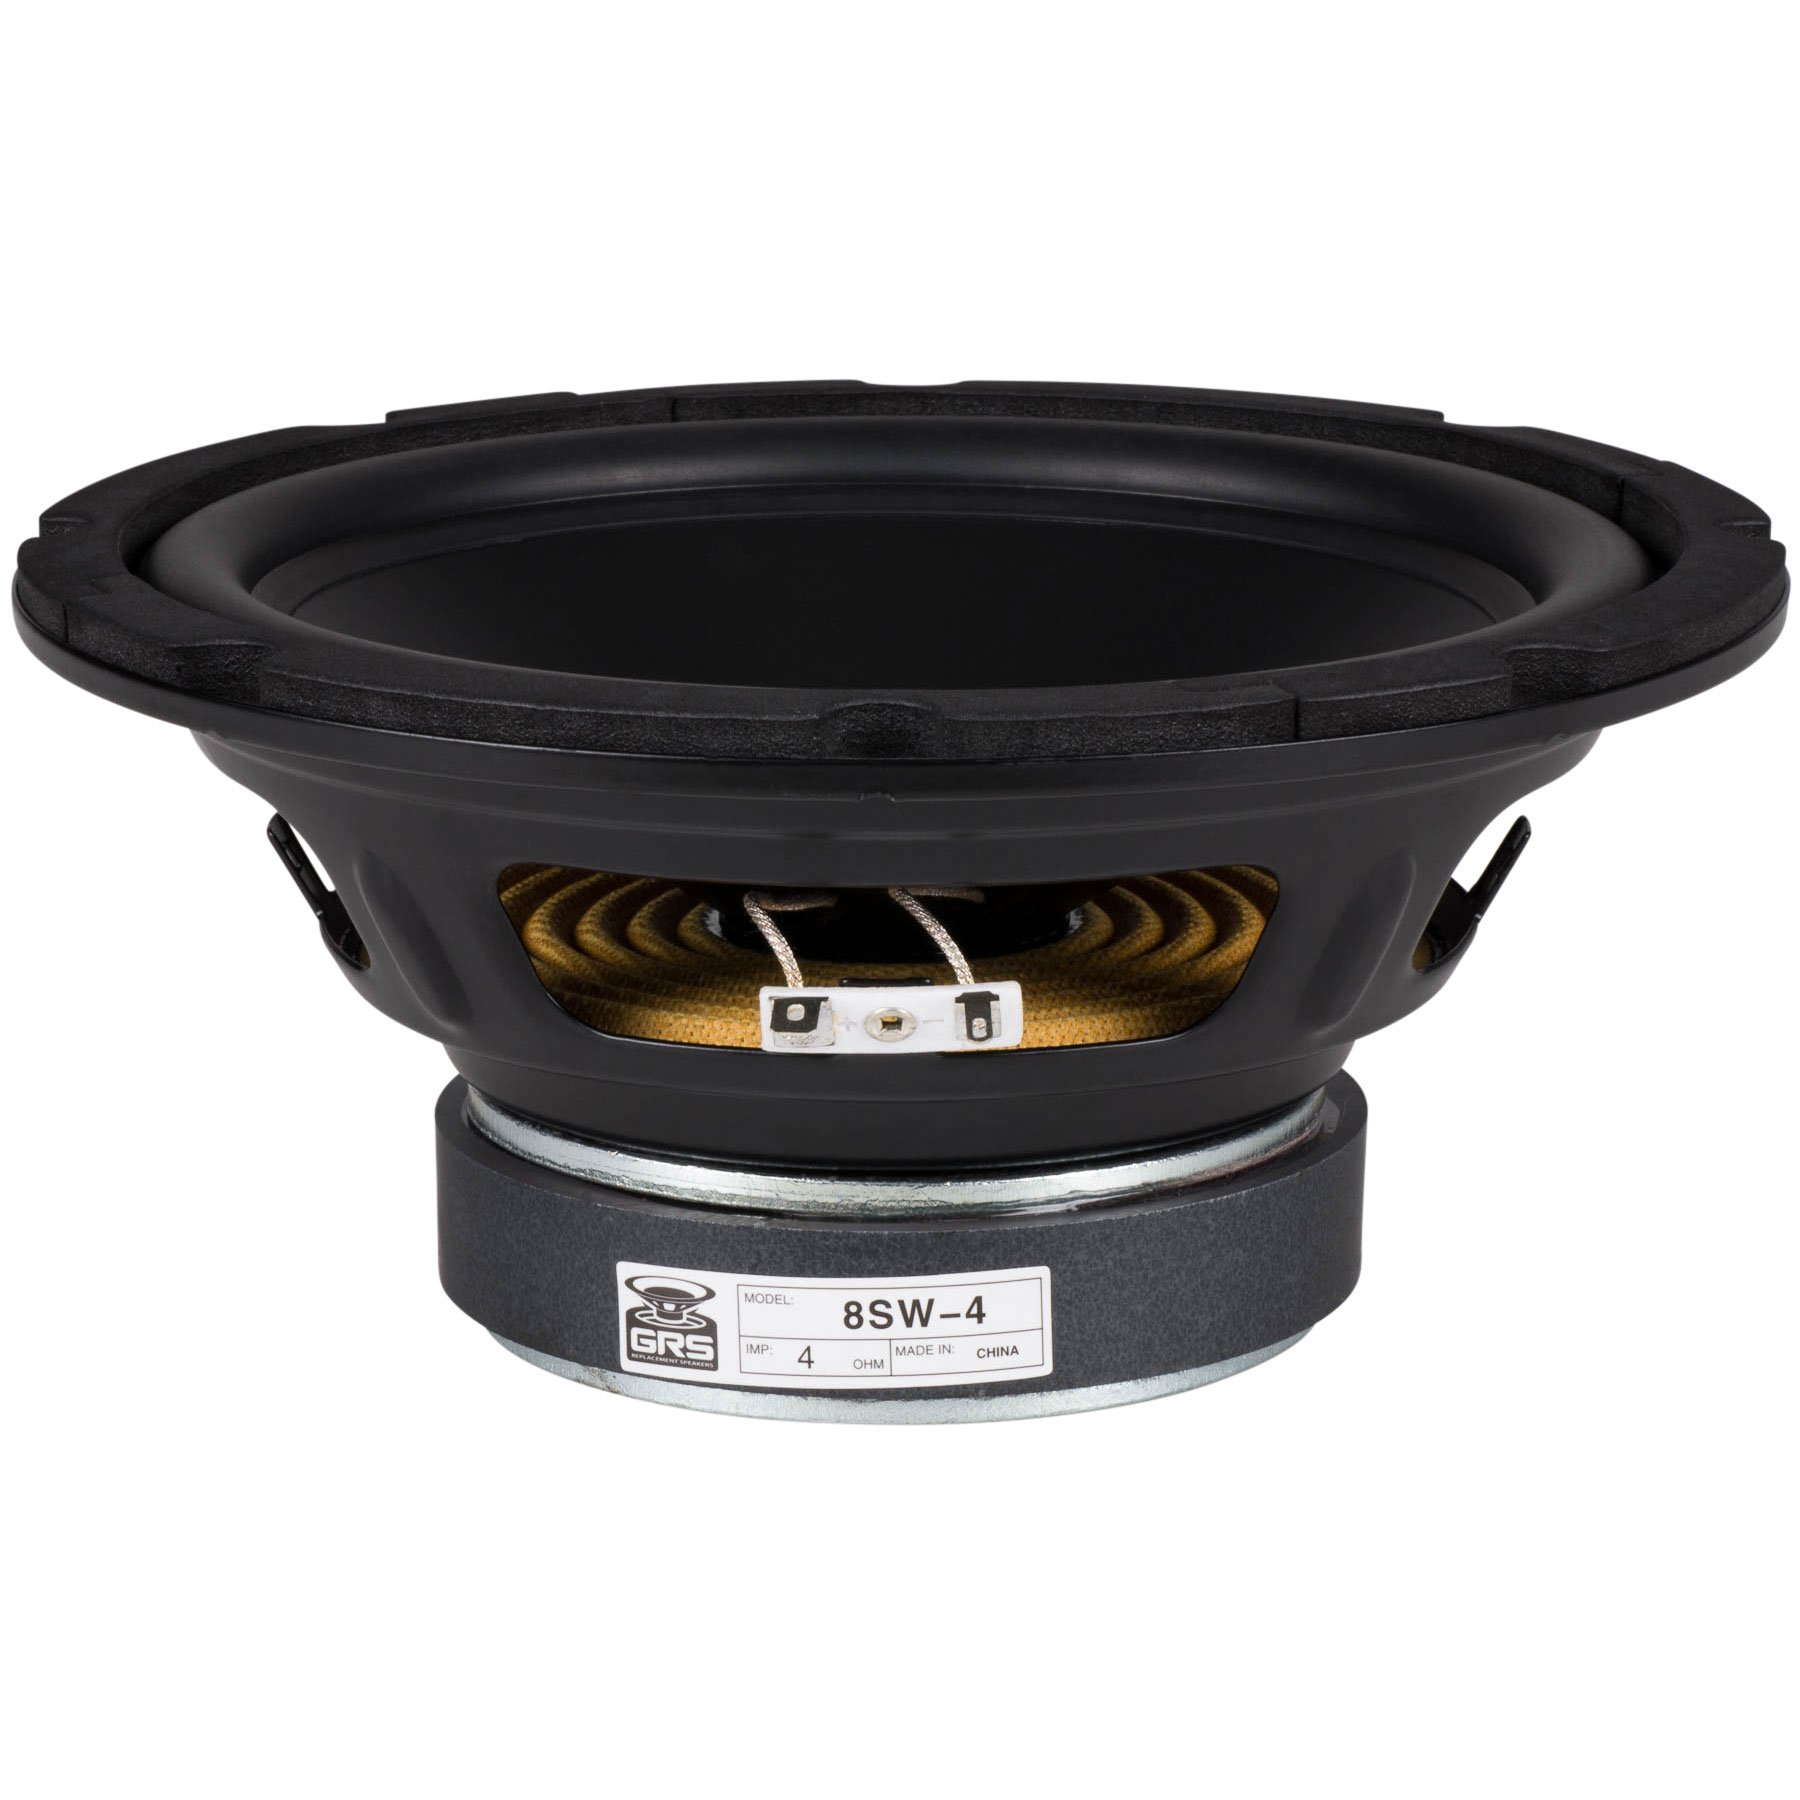 GRS 8SW-4 8'' Poly Cone Subwoofer 4 Ohm by GRS